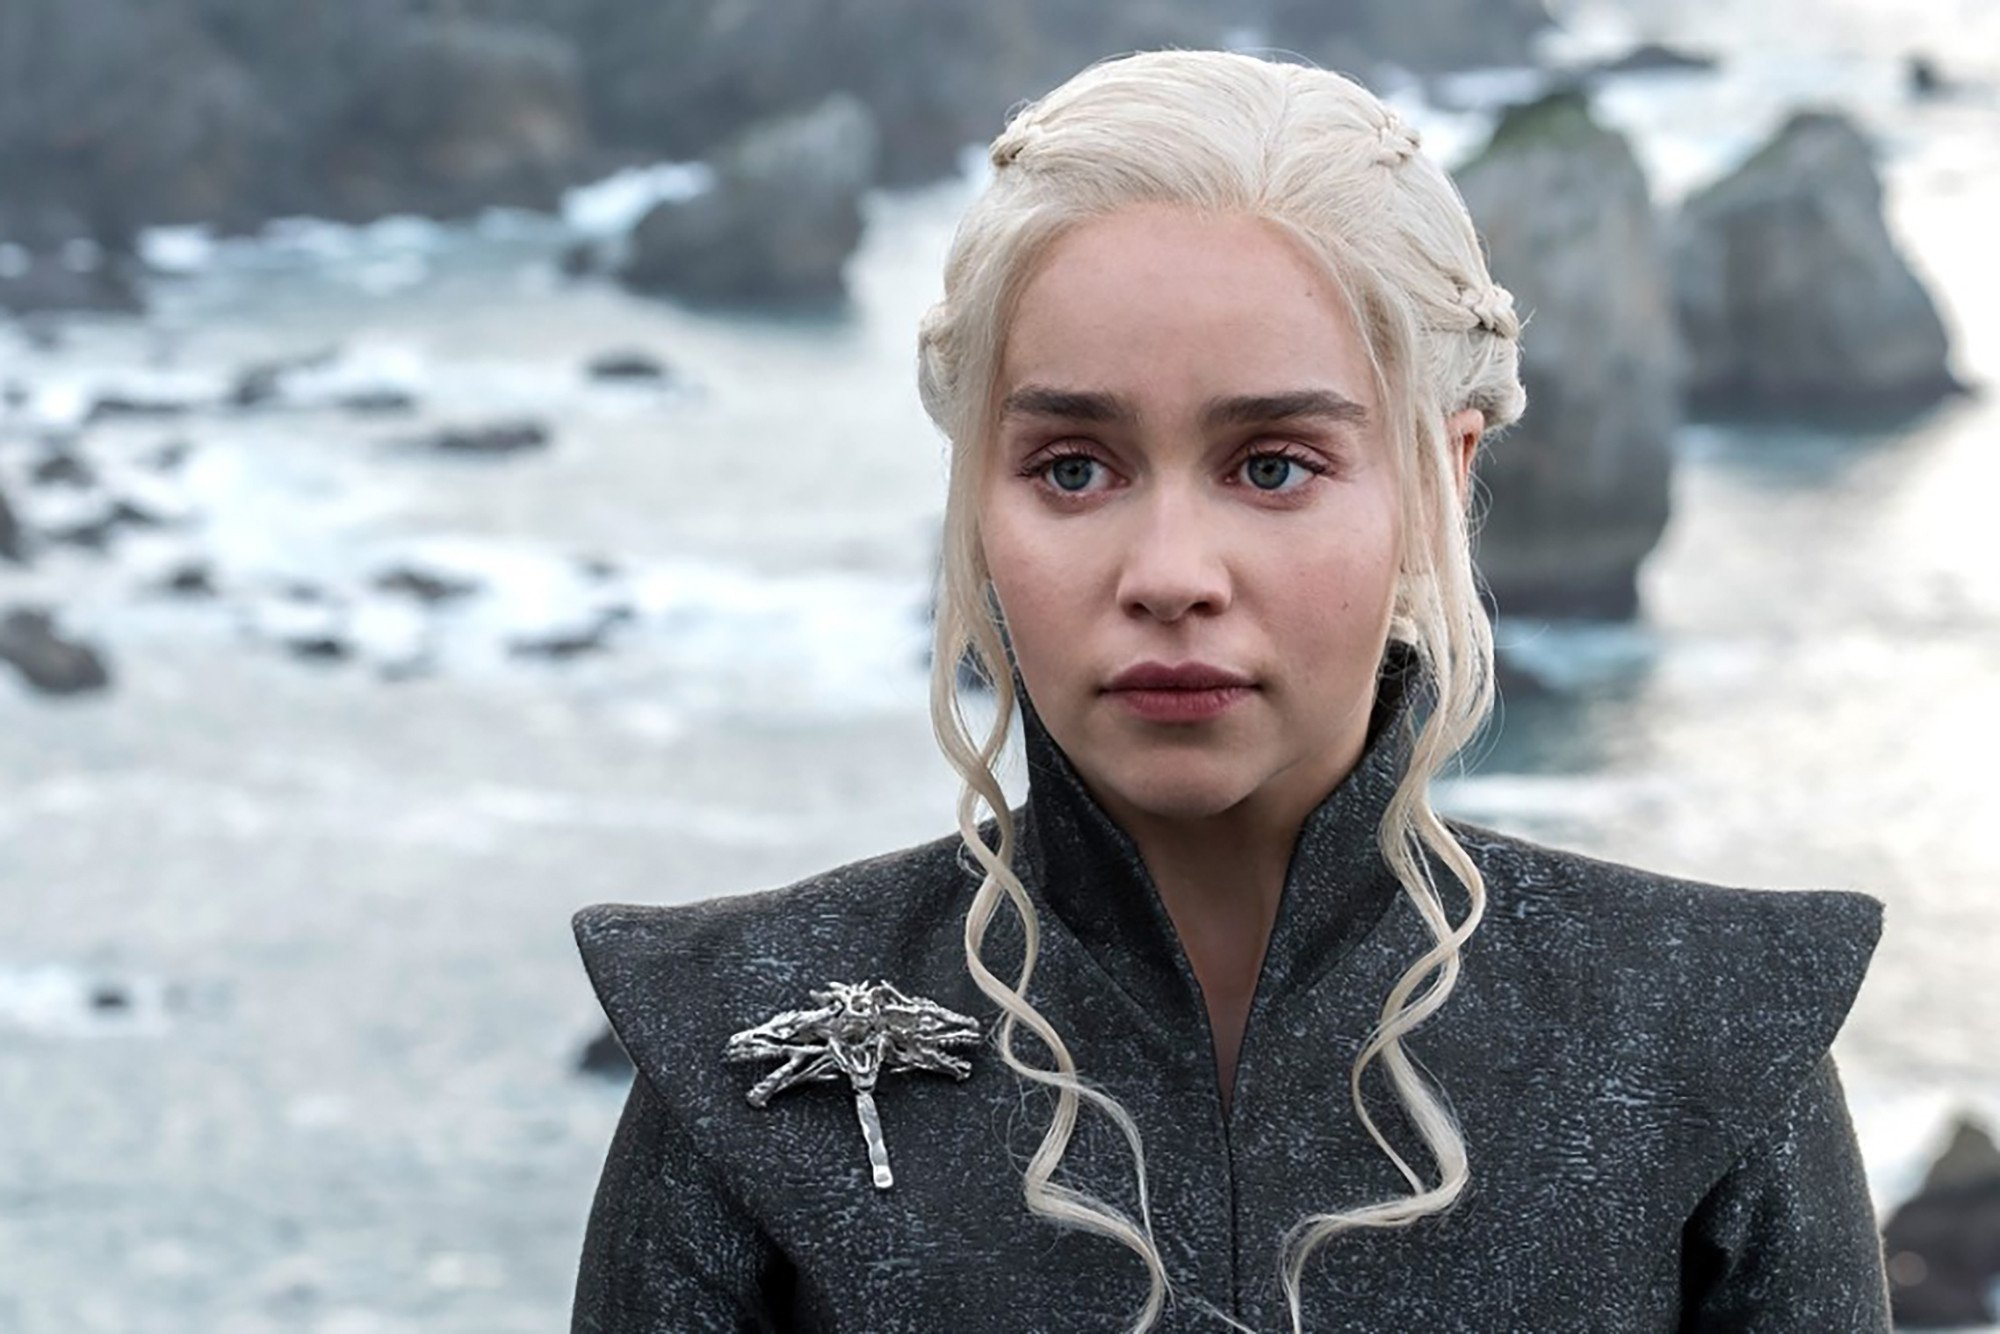 'Game of Thrones' may end in a bloodbath